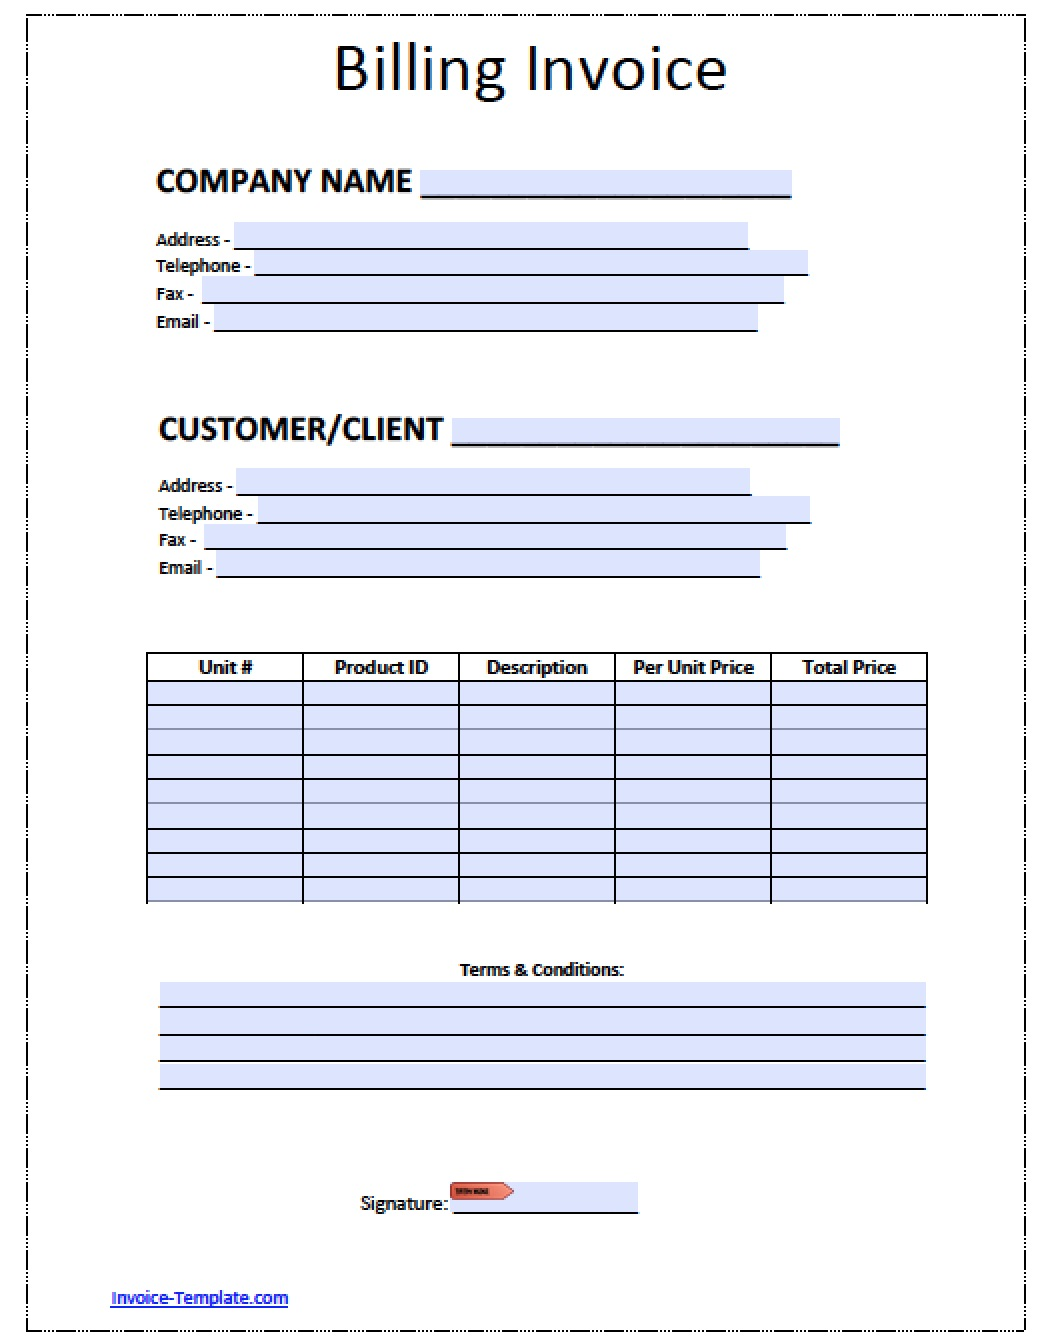 Free Blank Invoice Templates In PDF Word Excel - Invoice format in word india